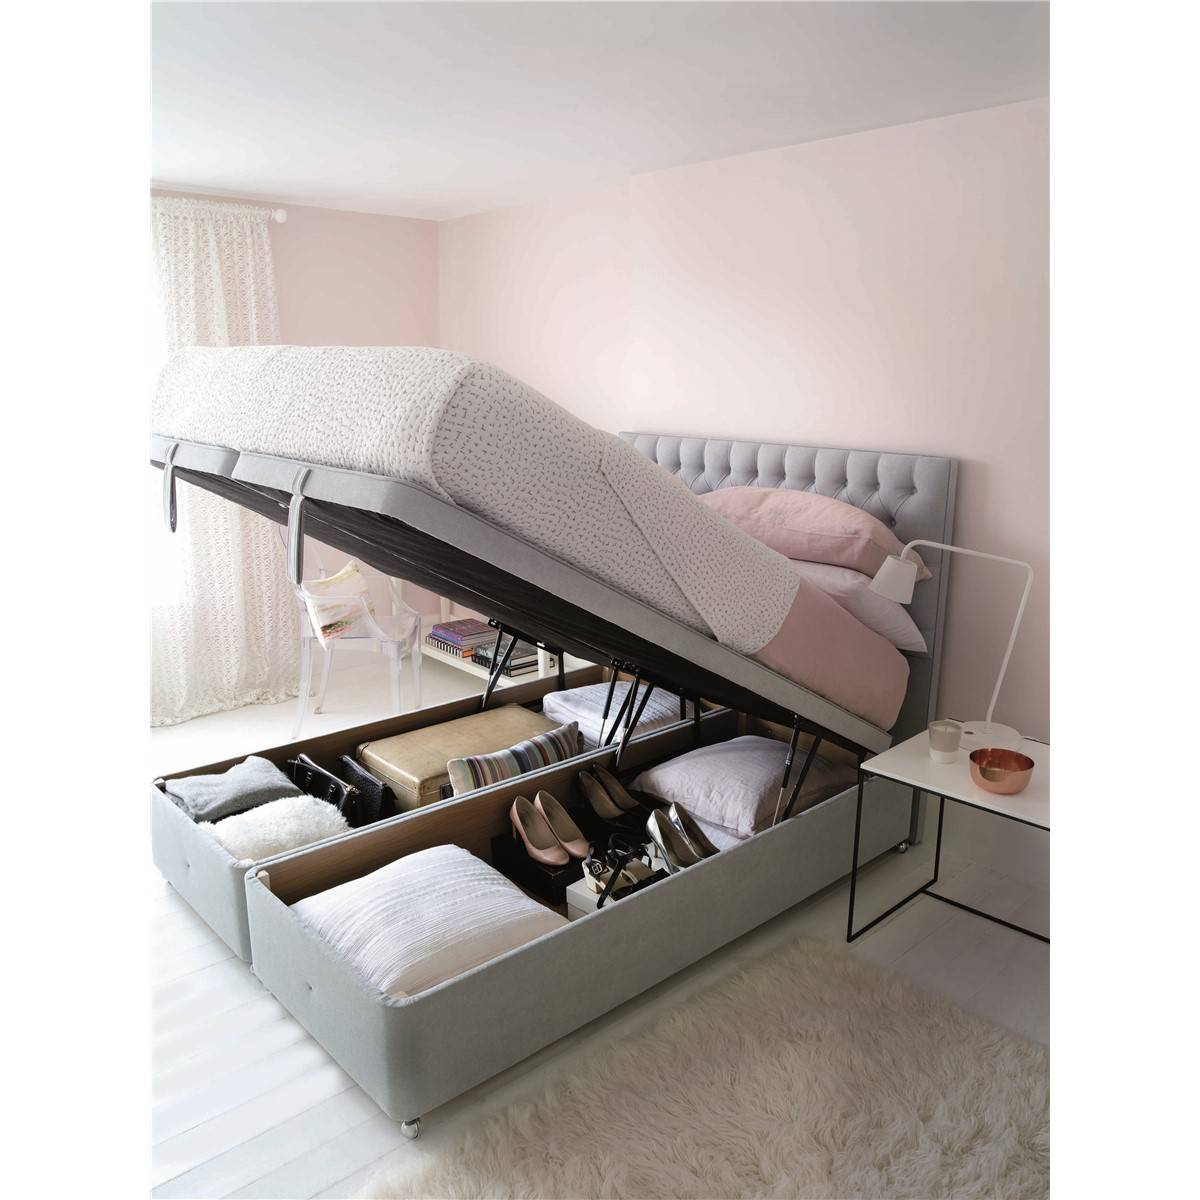 Hypnos super storage ottoman divan base ottoman beds for Divan bed base with storage